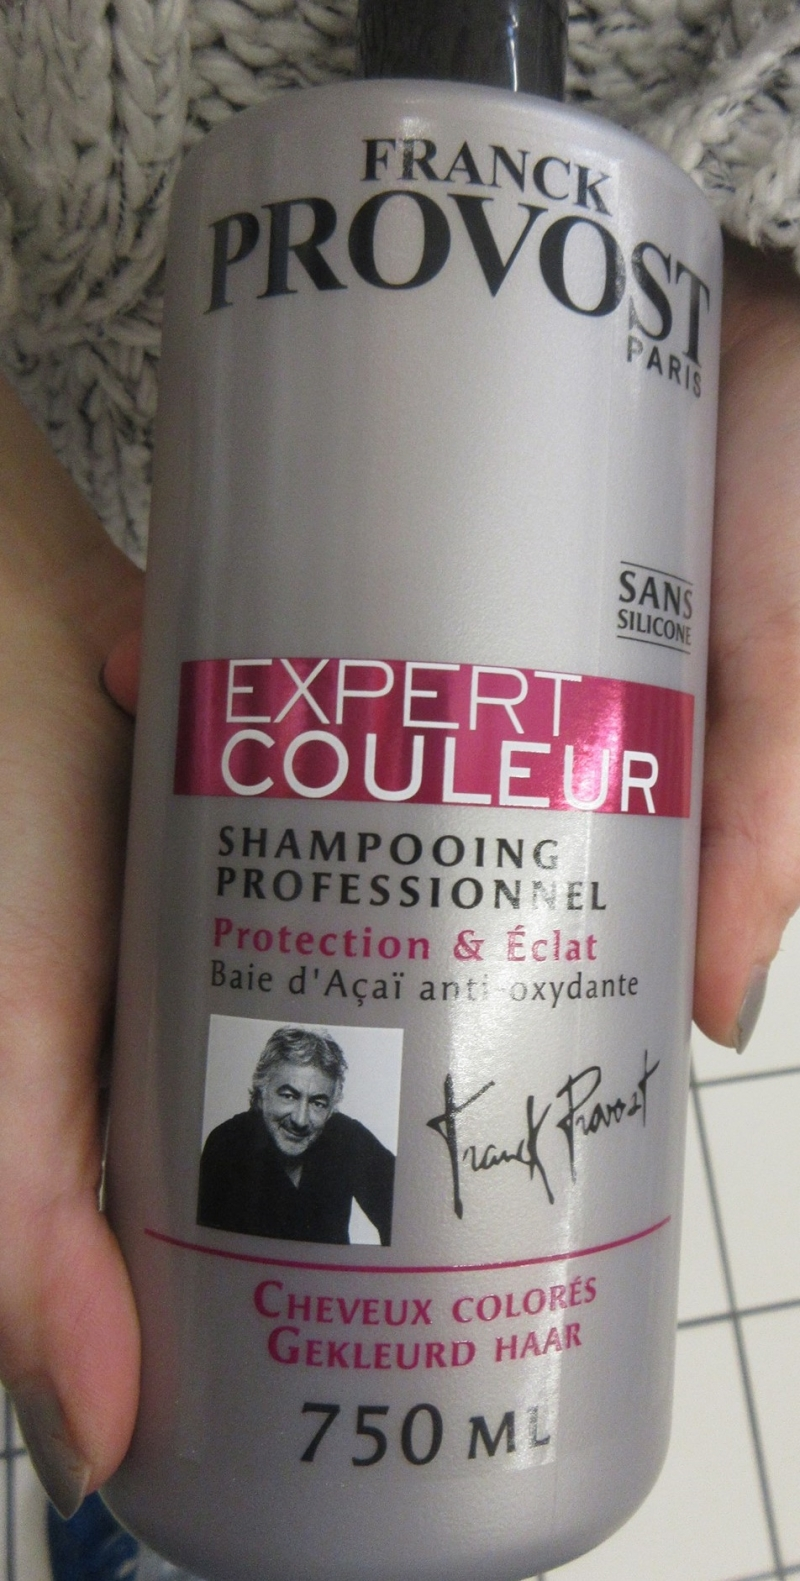 Swatch Expert couleur, Franck Provost